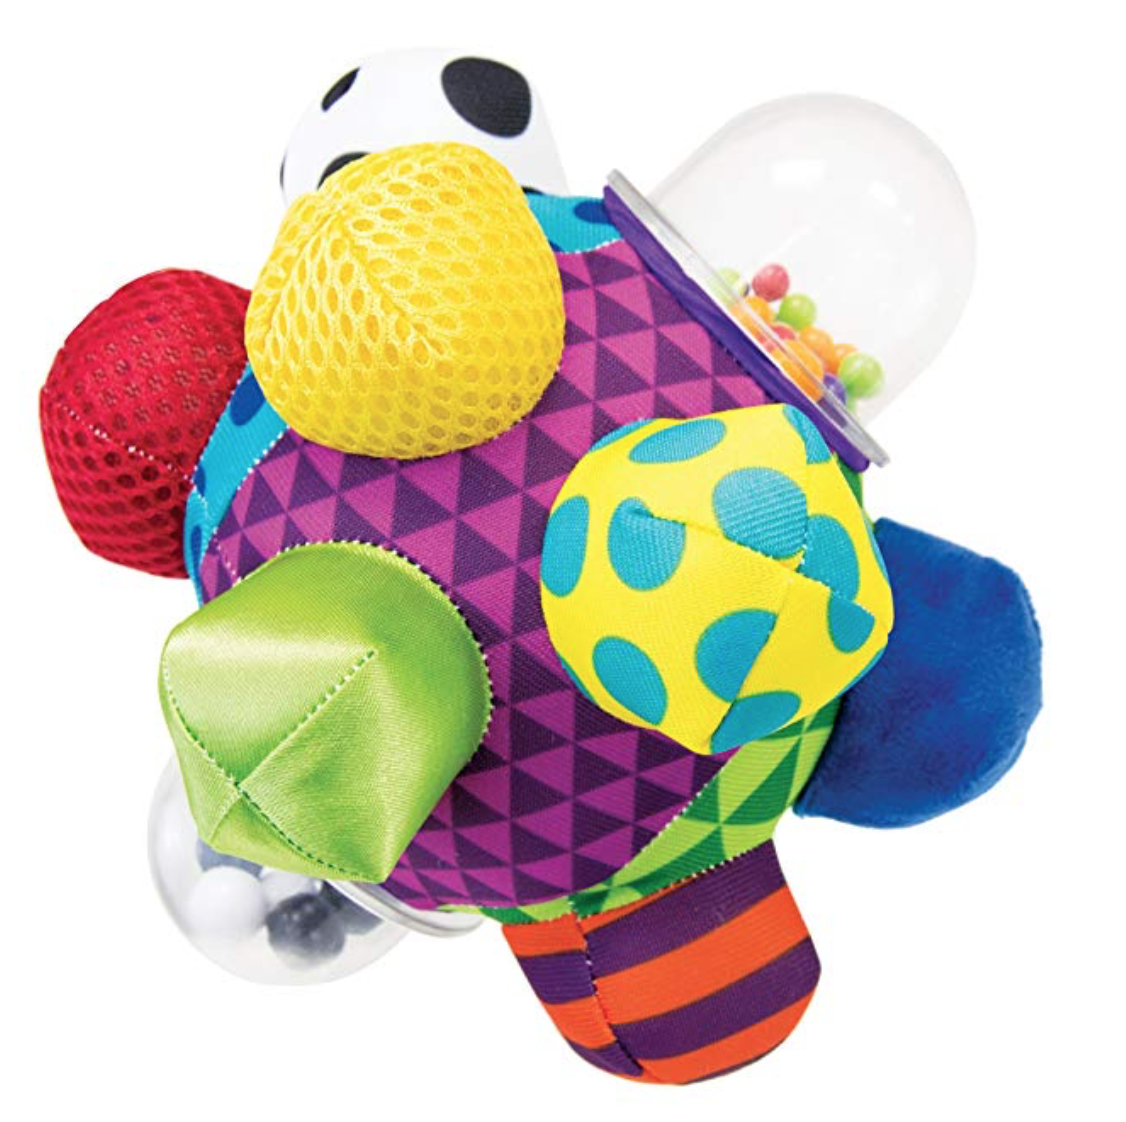 6 Month Old Baby Must Haves by popular Chicago lifestyle blog, Glass of Glam: image of a colorful sensory toy.